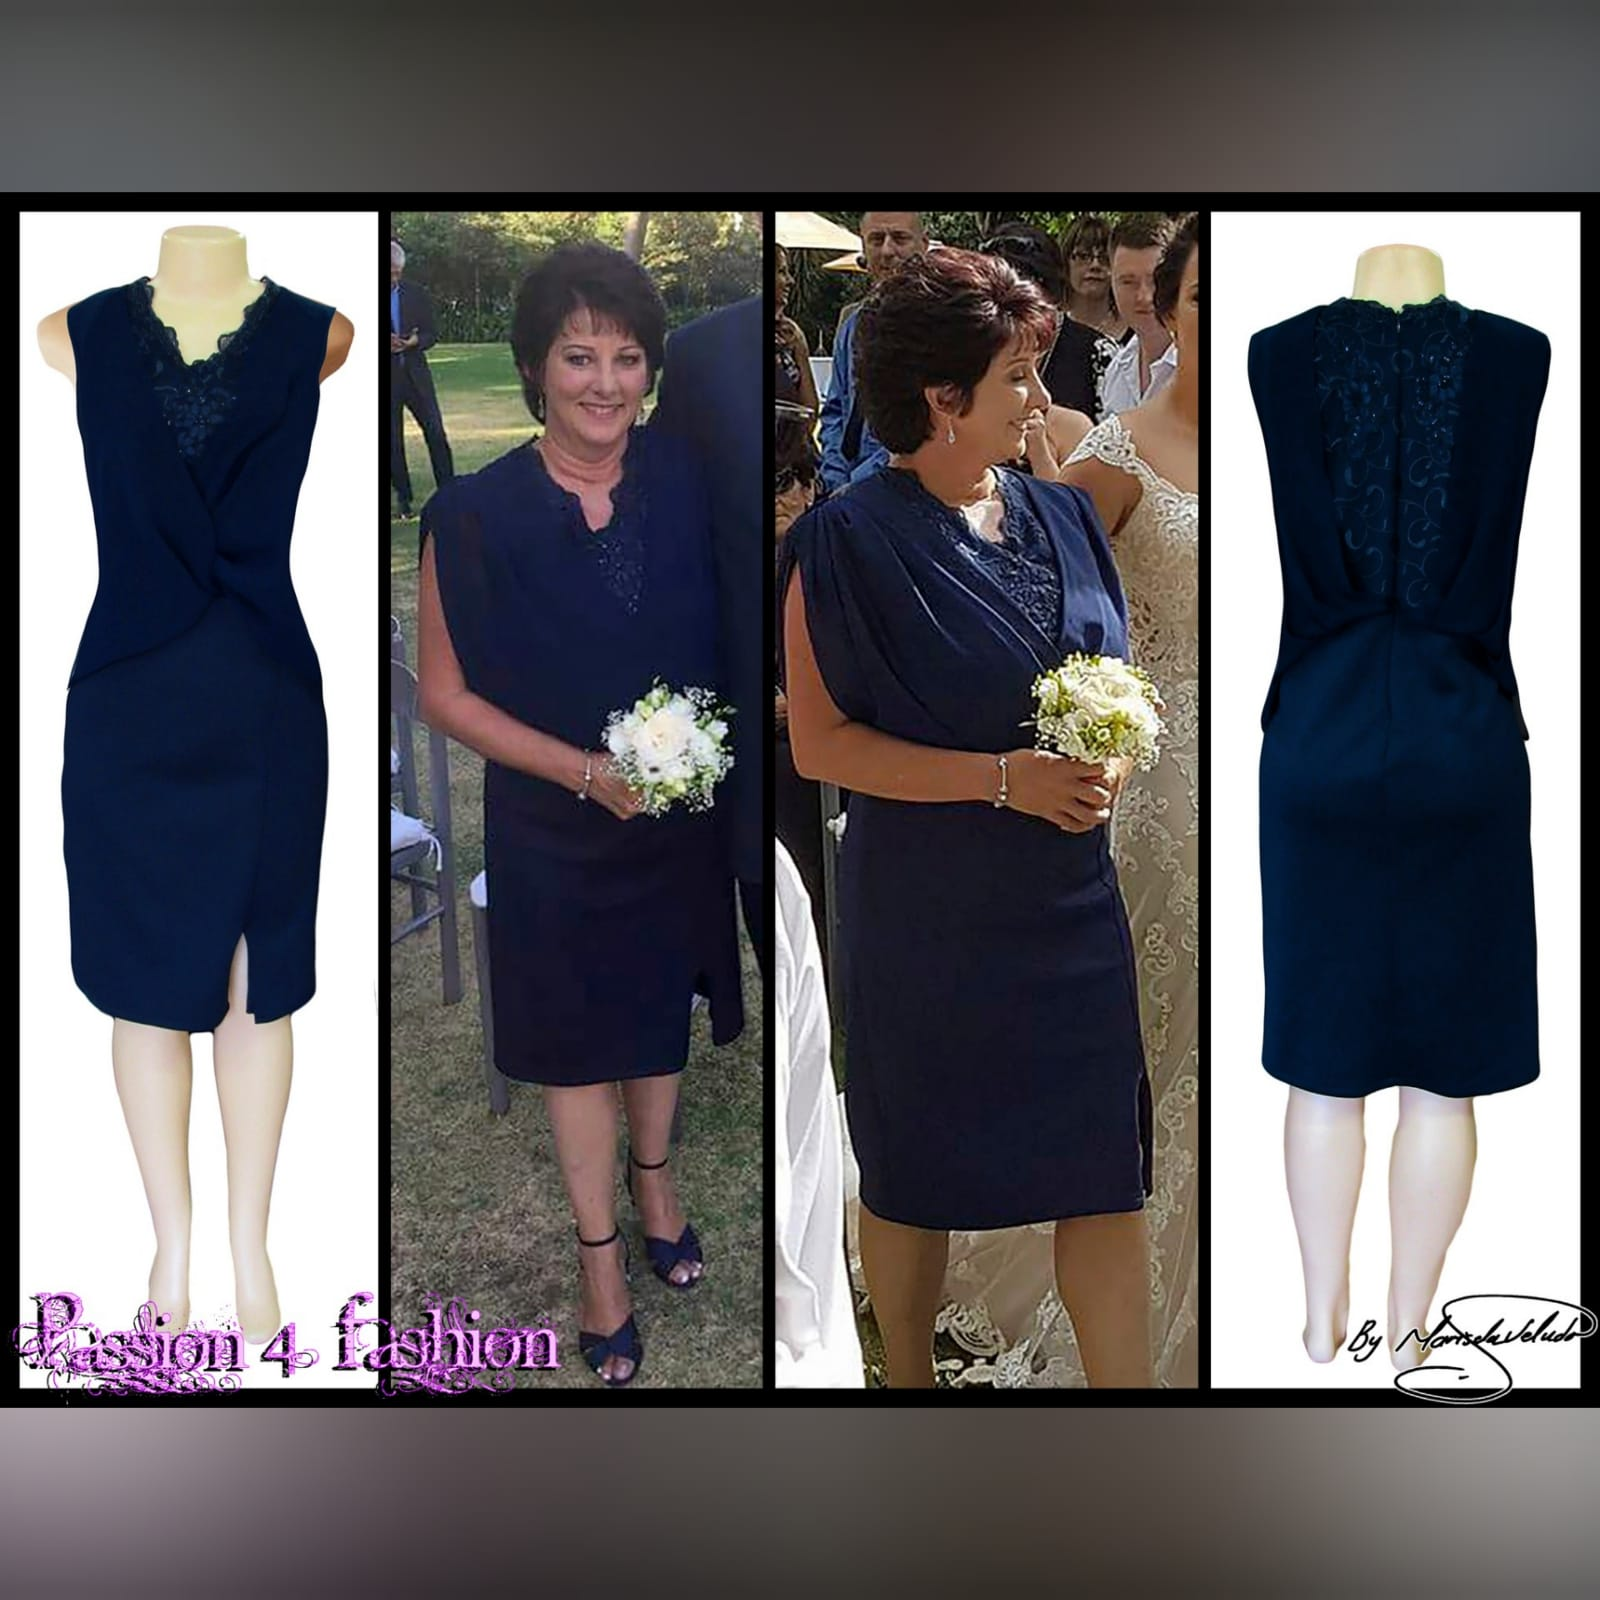 Navy blue knee length mother of the bride dress 6 navy blue knee length mother of the bride dress, fitted bottom, with a slit. Lace bodice with an overlay of pleated chiffon.